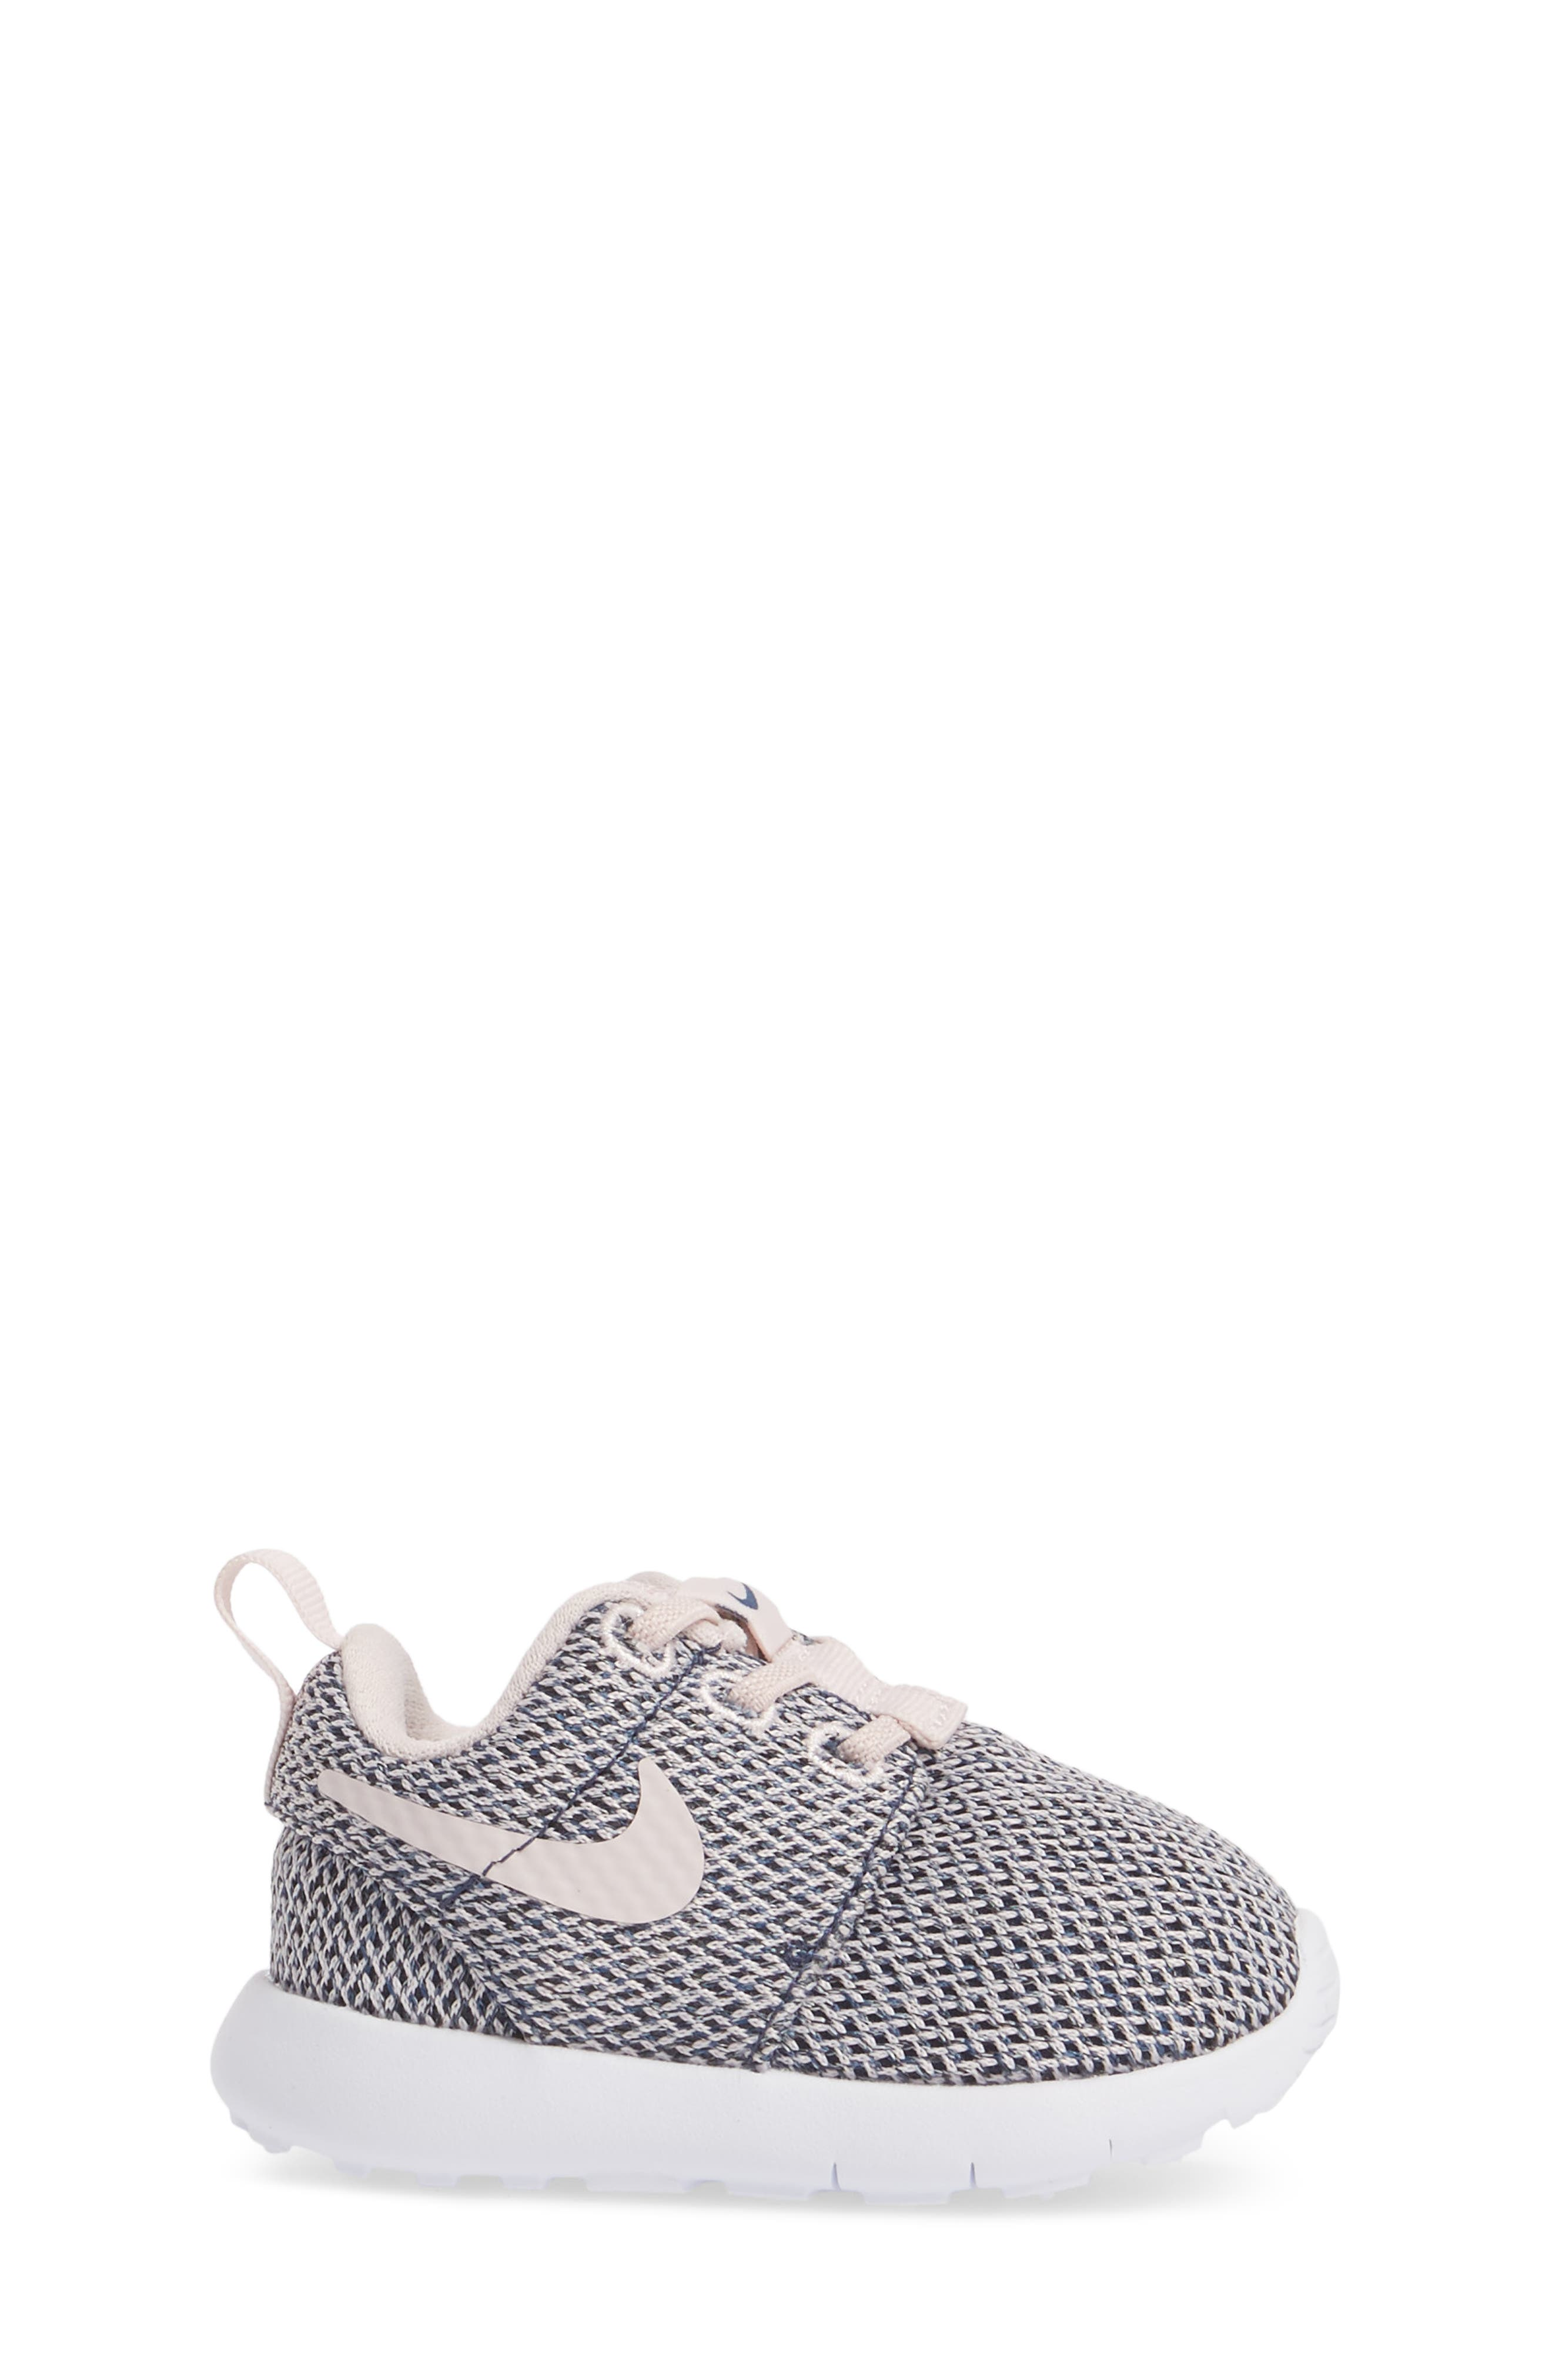 Roshe Run Sneaker,                             Alternate thumbnail 3, color,                             414